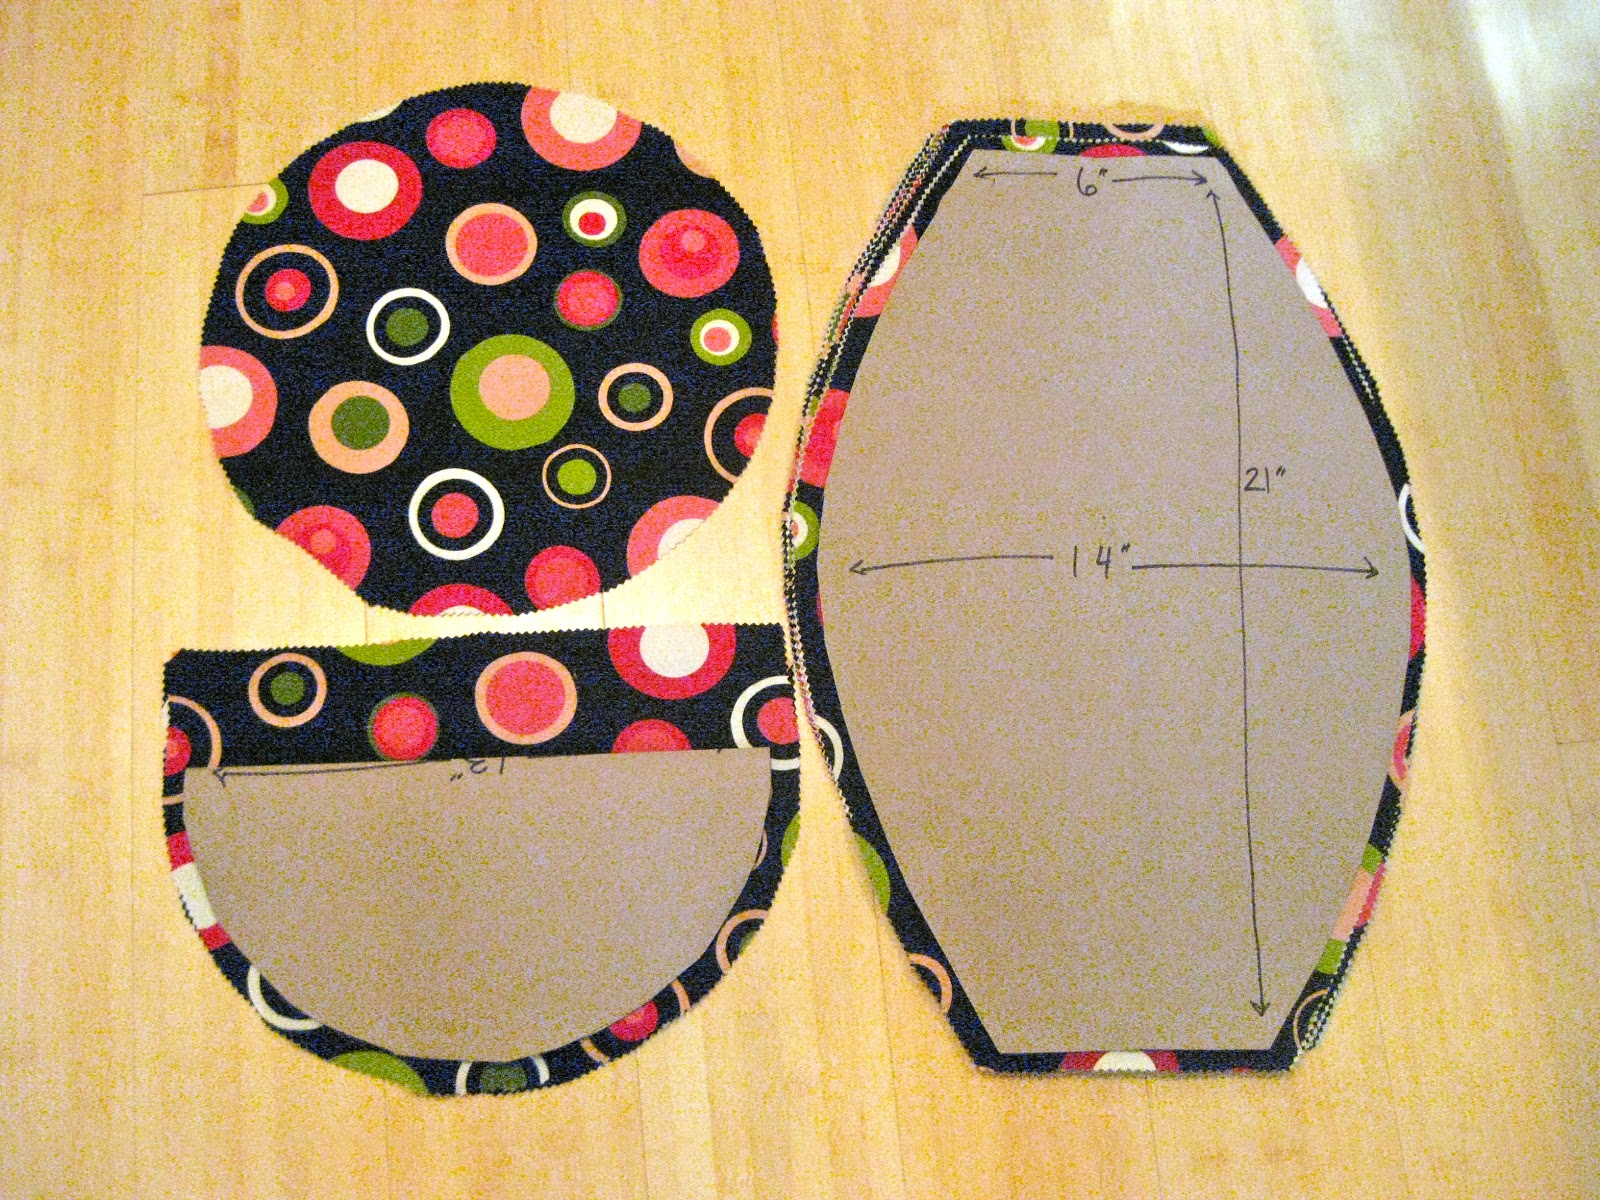 Bean Bag Chair Pattern Template http://summerdoyle.blogspot.com/2010_10_01_archive.html